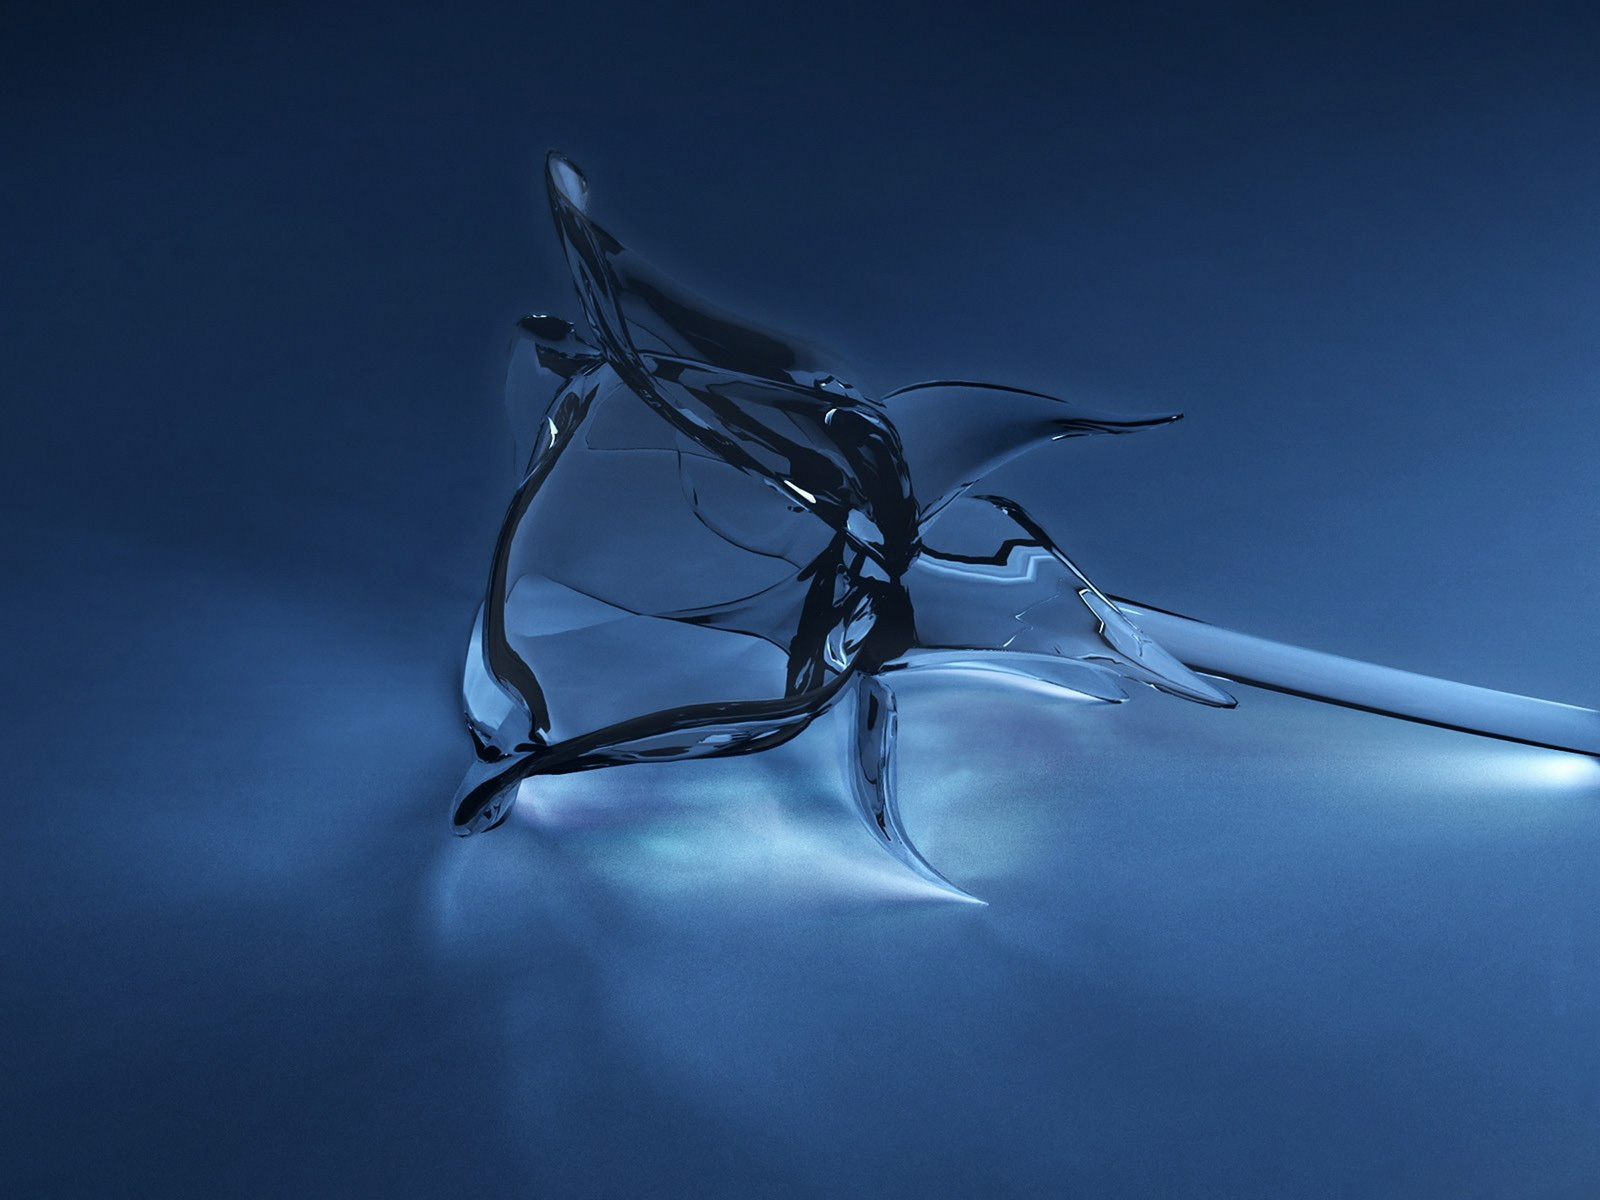 3D CG PC Wallpapers Download 3D PC Collection Wallpapers 1600x1200